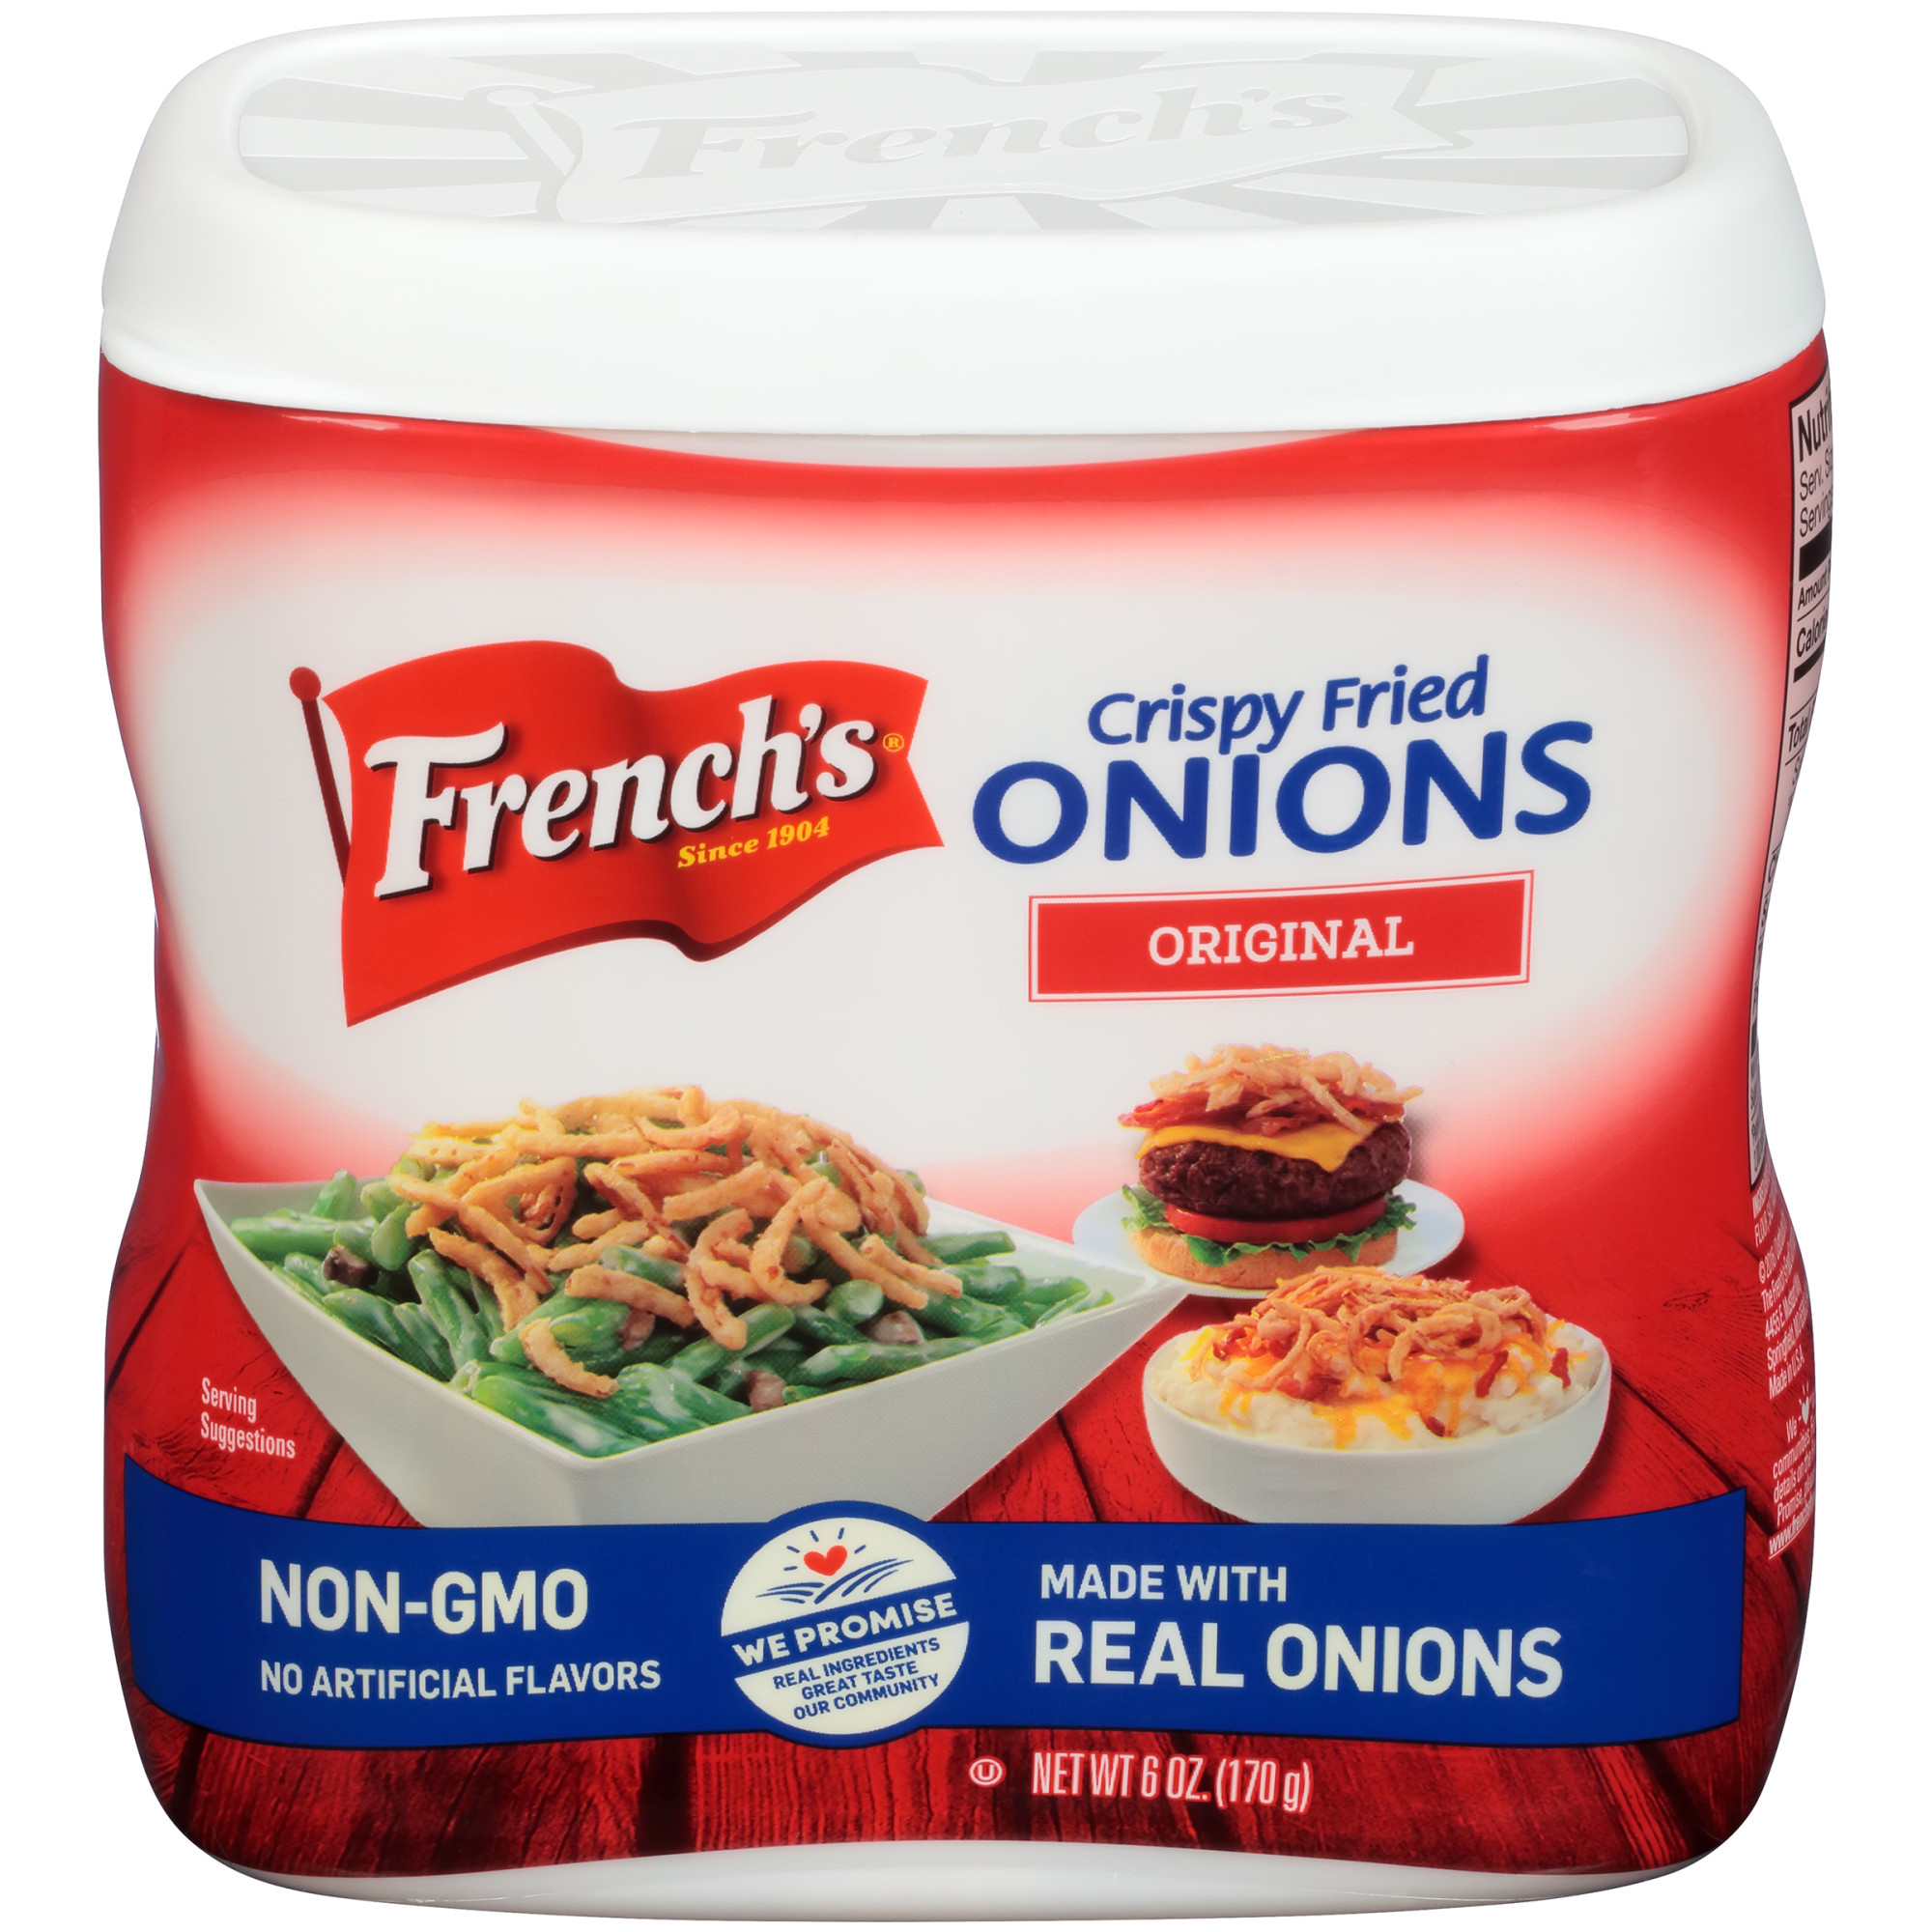 (6 Pack) French's Original Crispy Fried Onions, 6 Oz